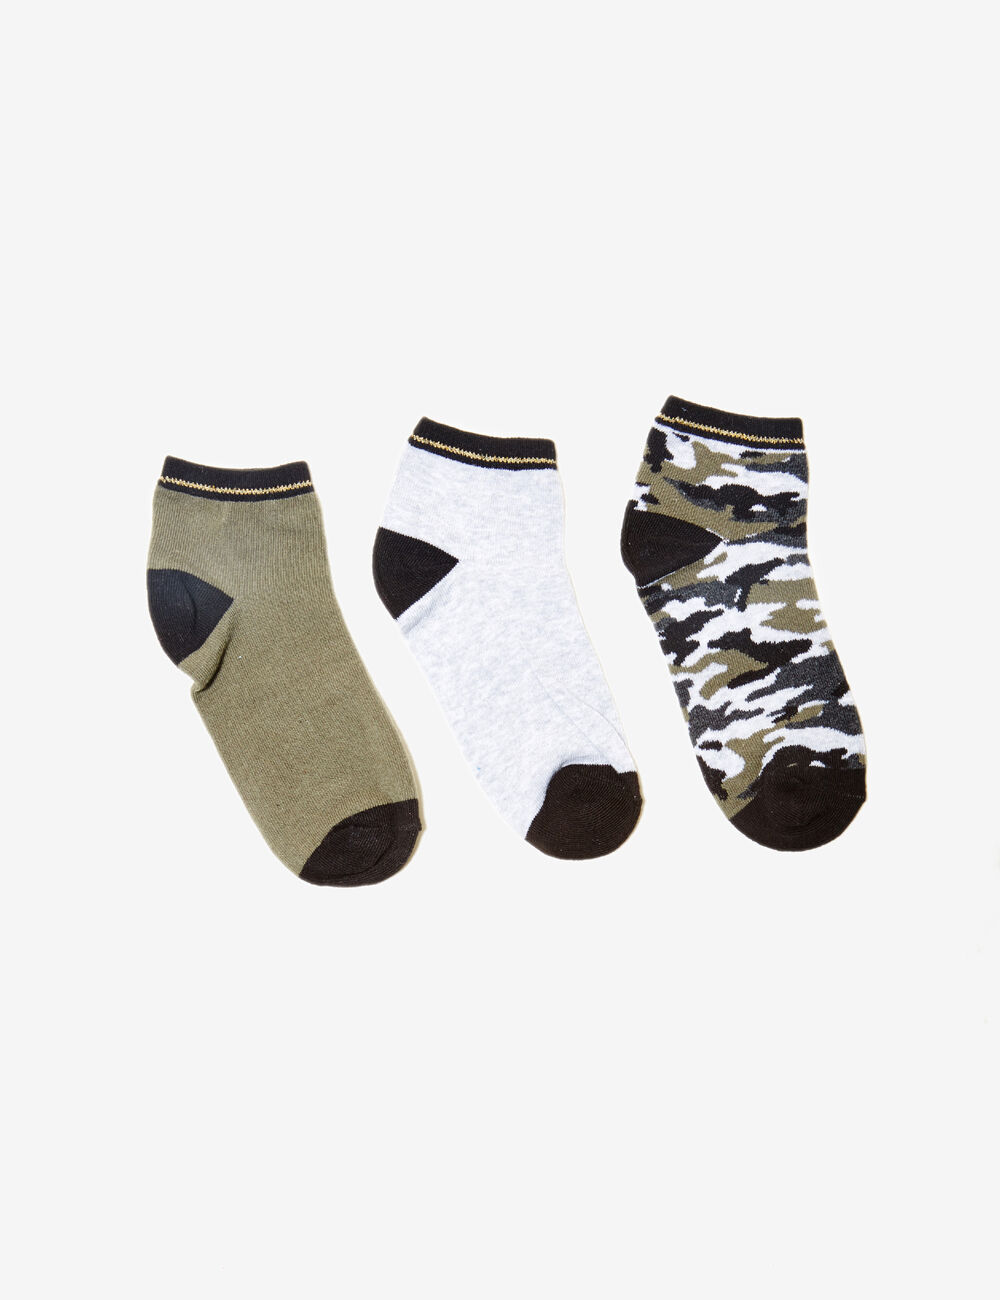 chaussettes camouflage kaki noires et gris chin femme jennyfer. Black Bedroom Furniture Sets. Home Design Ideas